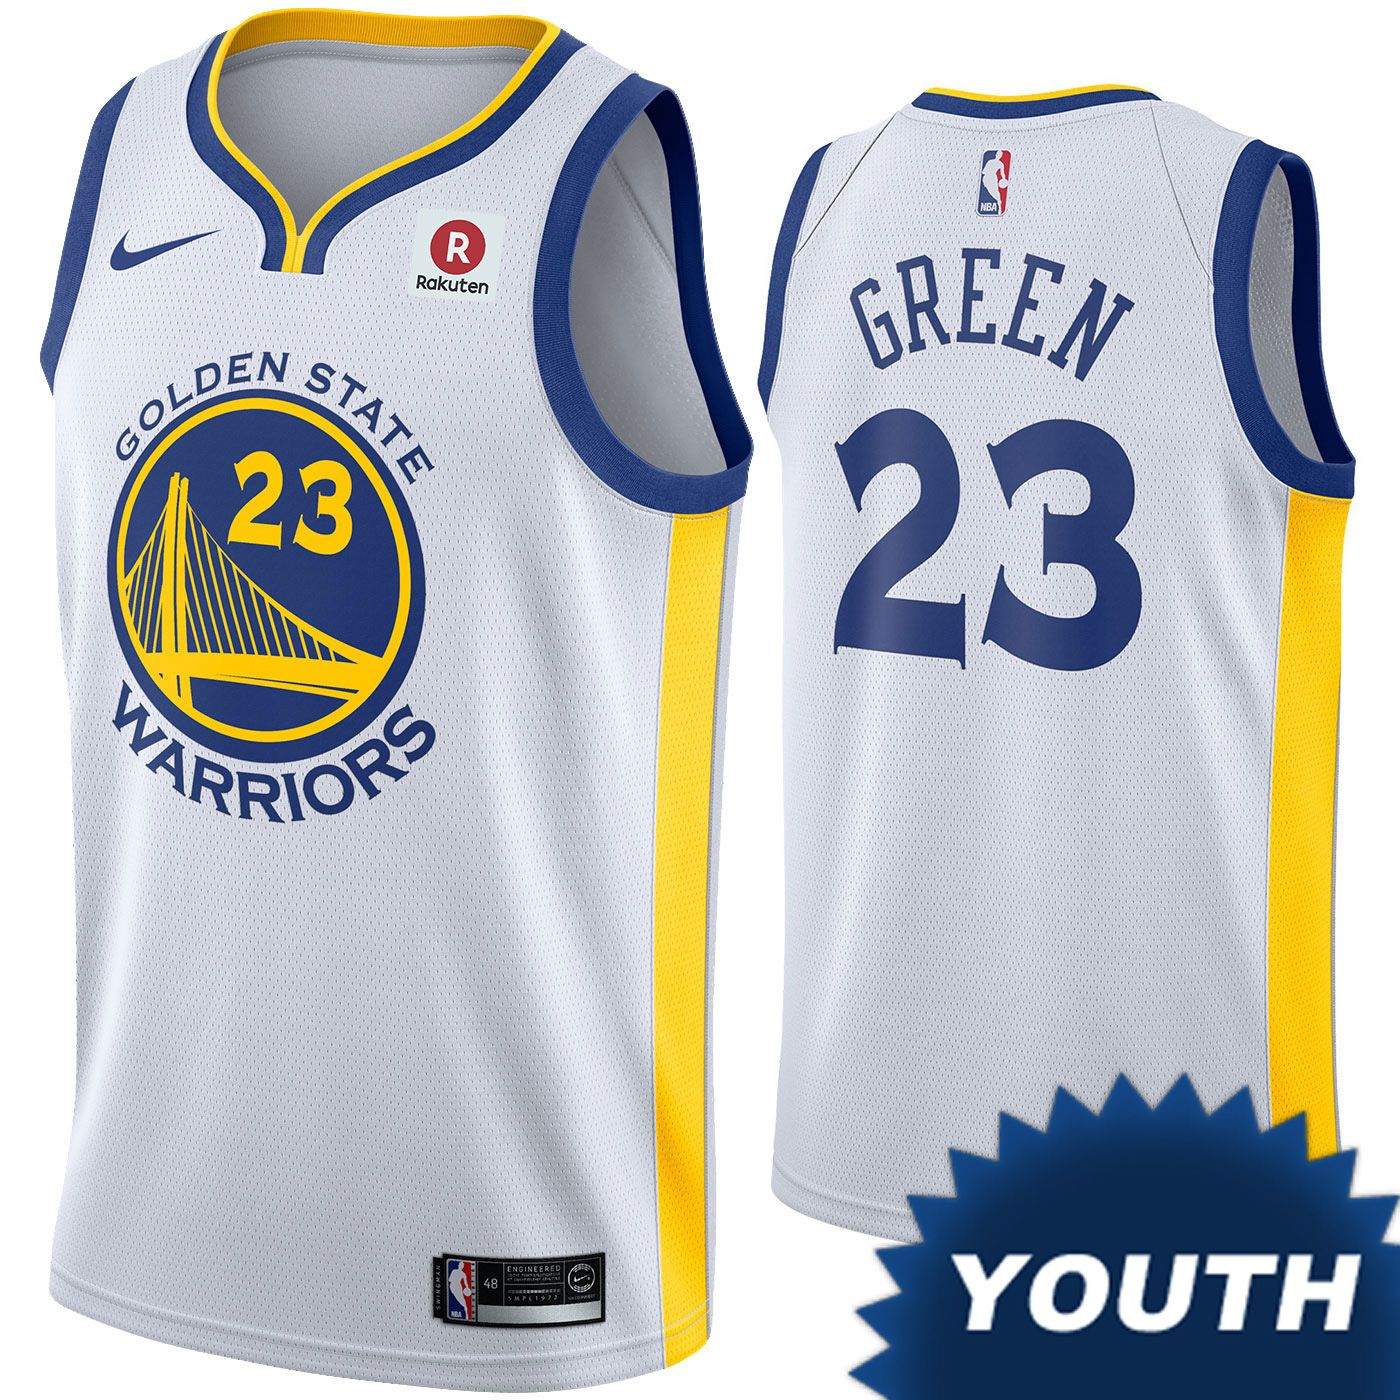 716cd1411a8 Golden State Warriors Nike Dri-FIT Youth Draymond Green  23 Swingman  Association Jersey - White